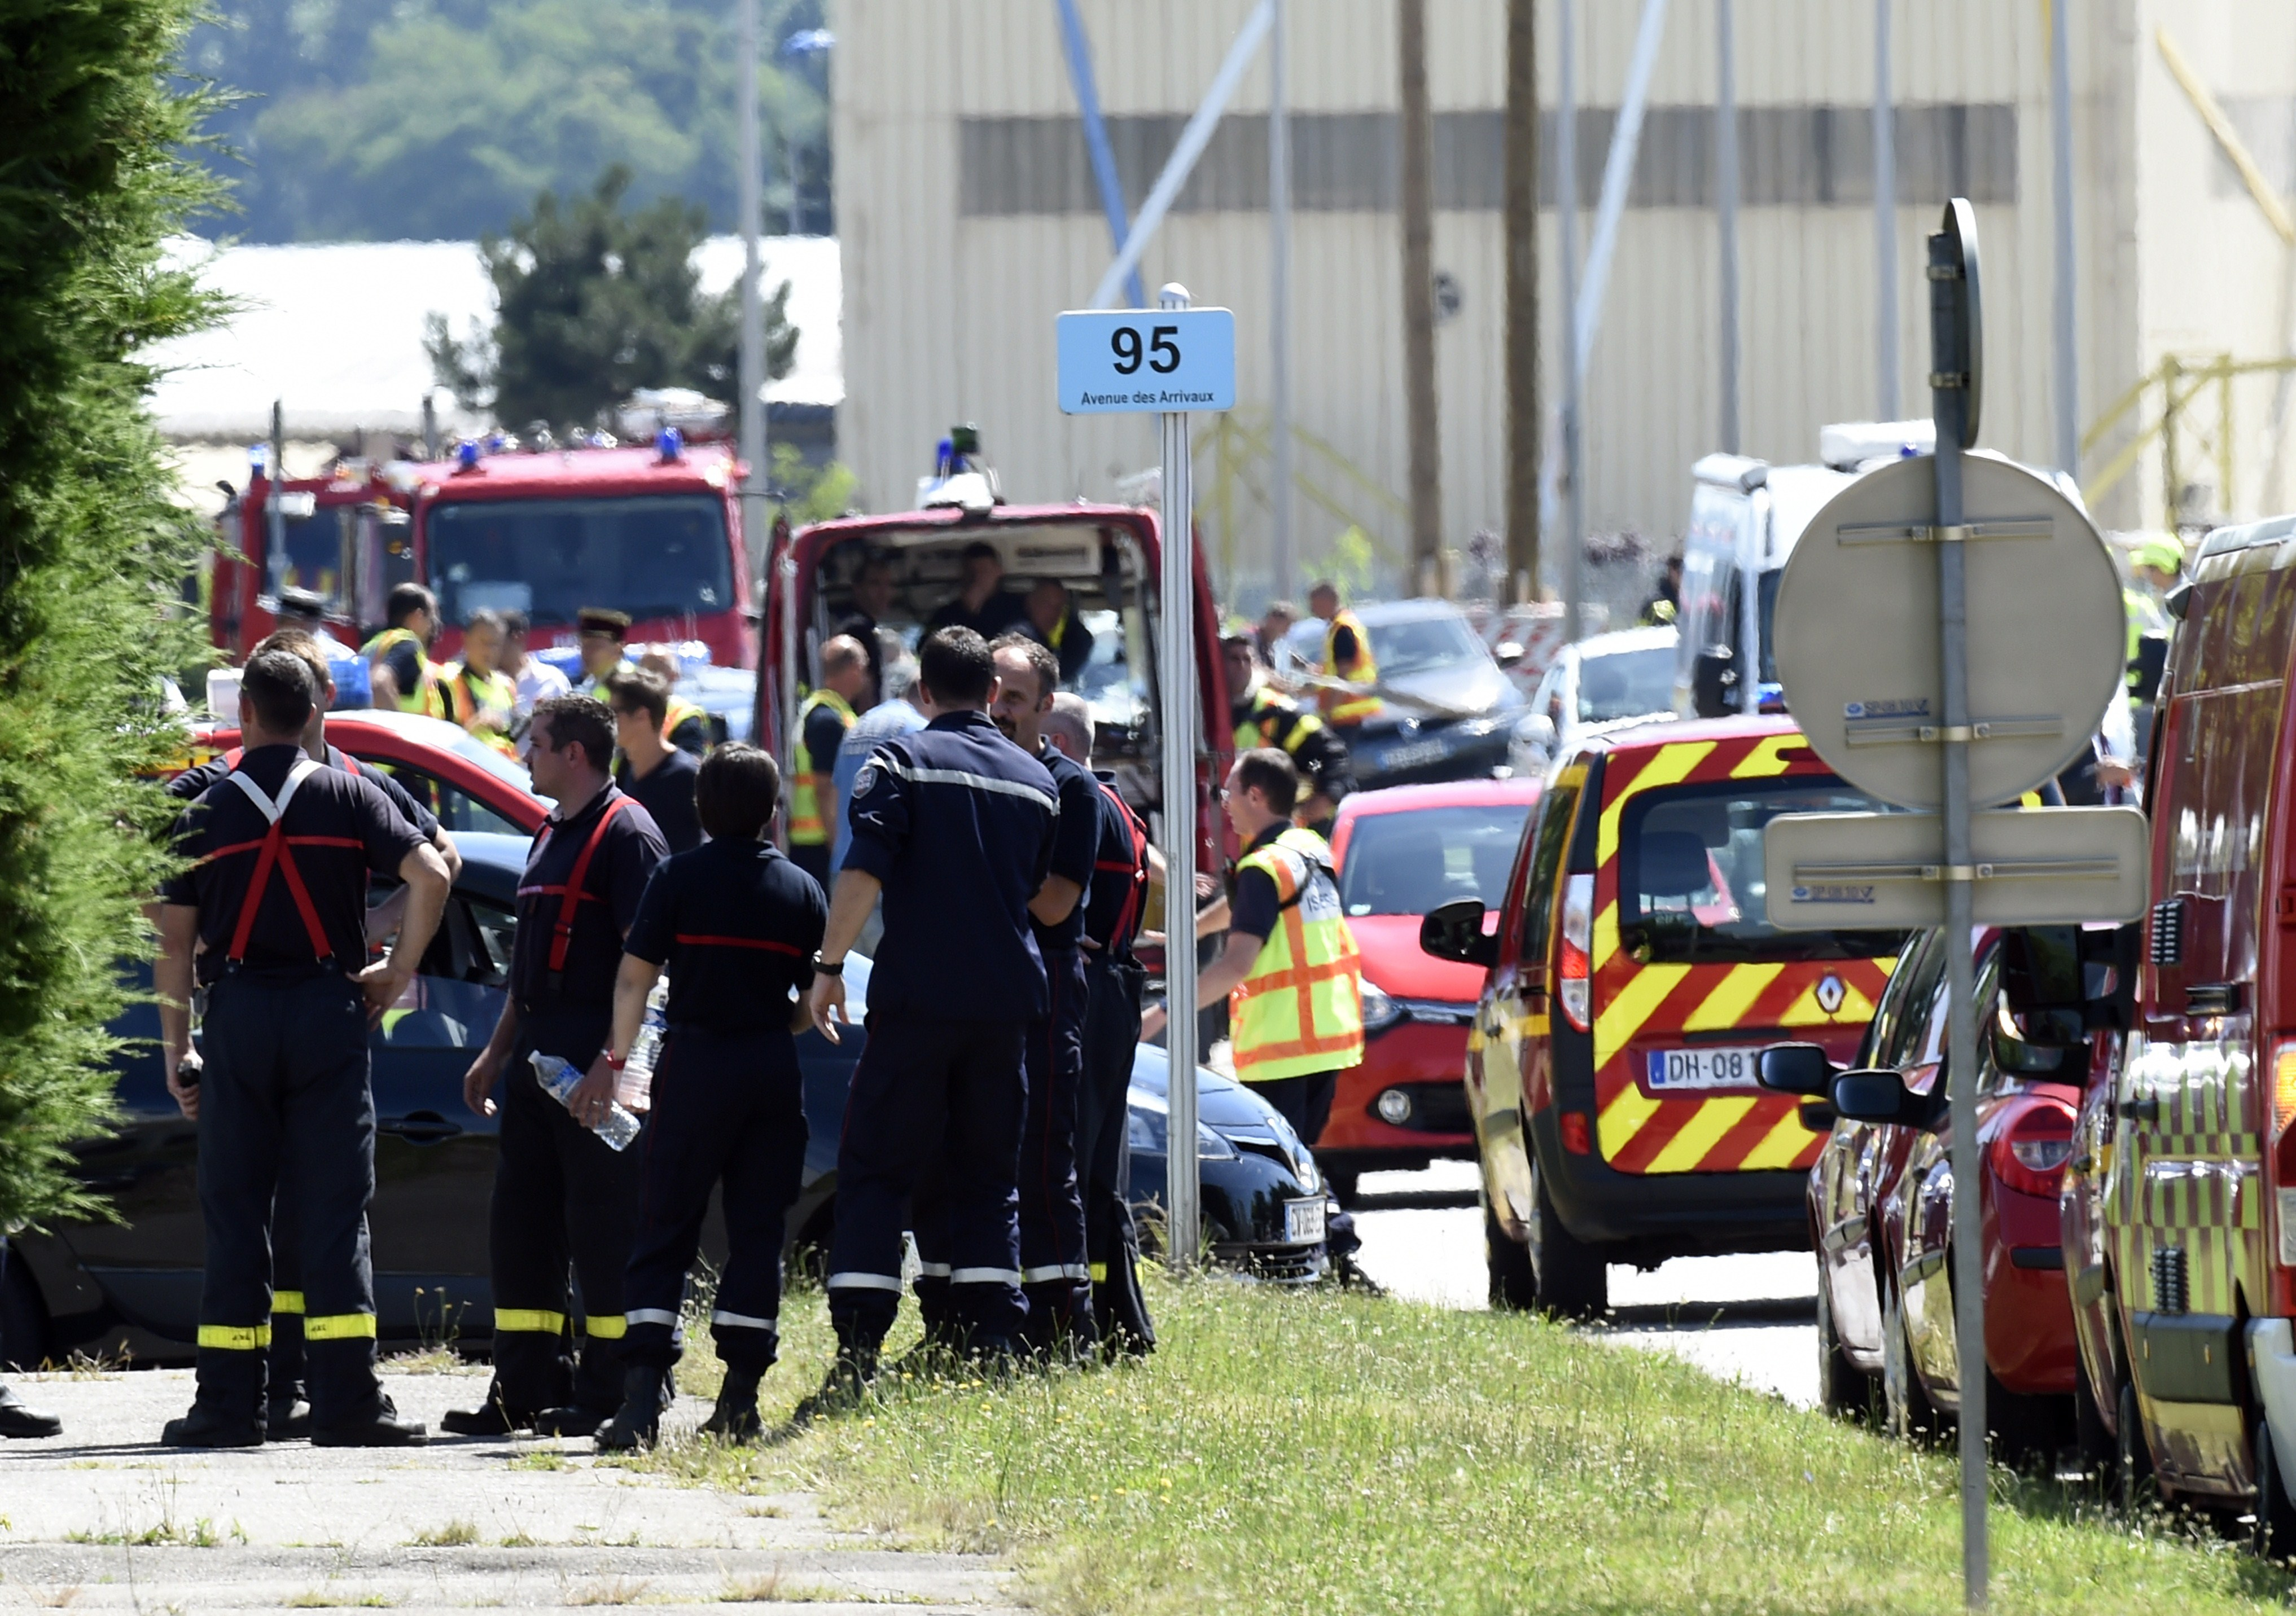 FRANCE-ATTACK-FACTORY